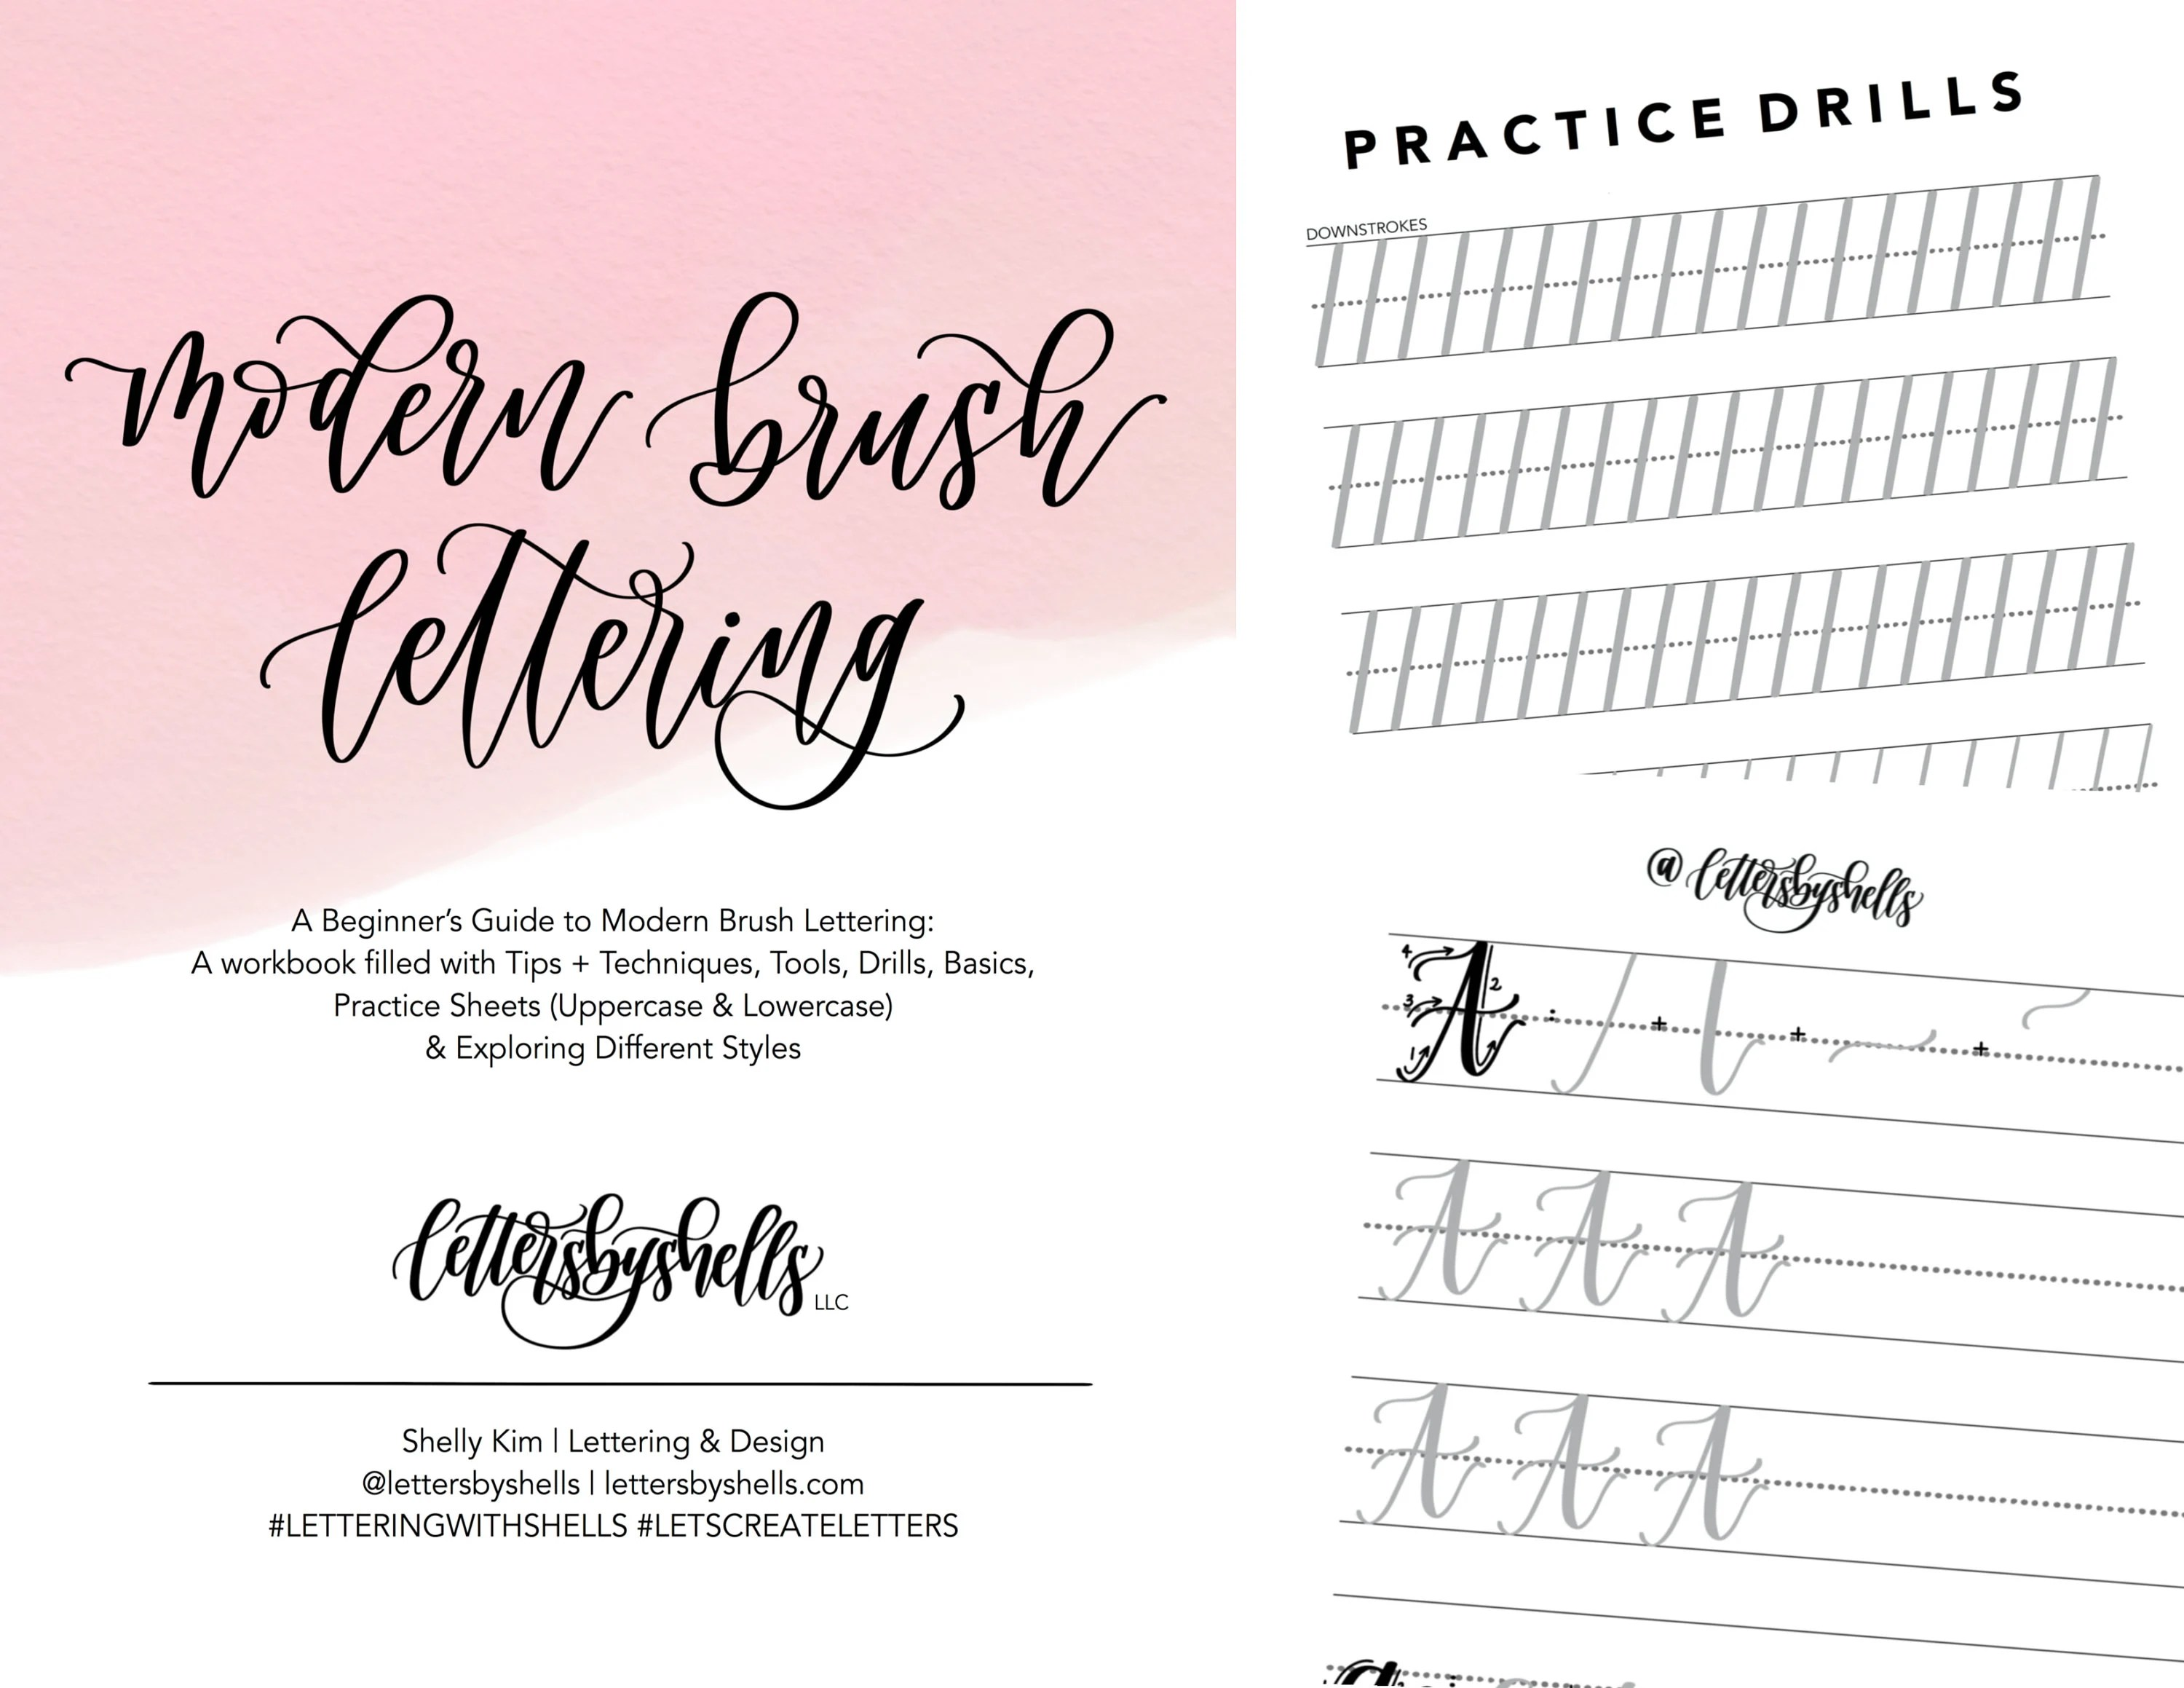 Wedding Calligraphy A Guide To Beautiful Hand Lettering Beginner S Guide To Modern Brush Lettering Modern Calligraphy Digital Download Workbook Practice Sheets Guide For Beginners